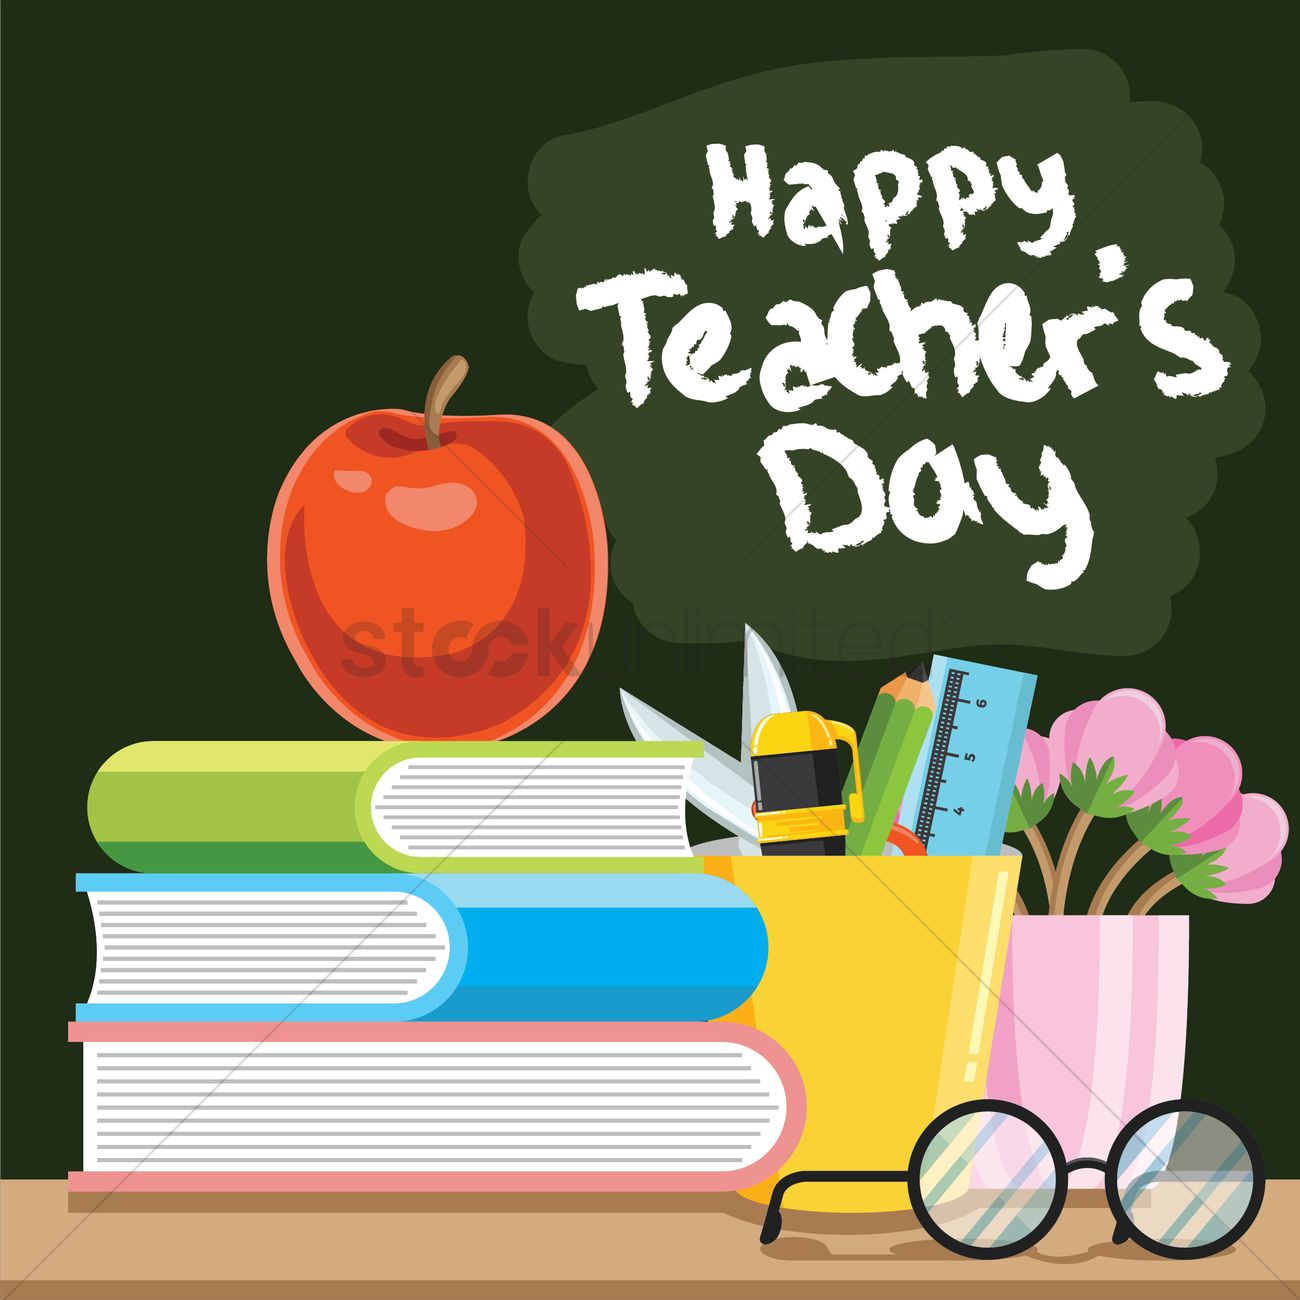 Happy Teachers Day Design Vector Image 2007123 Stockunlimited